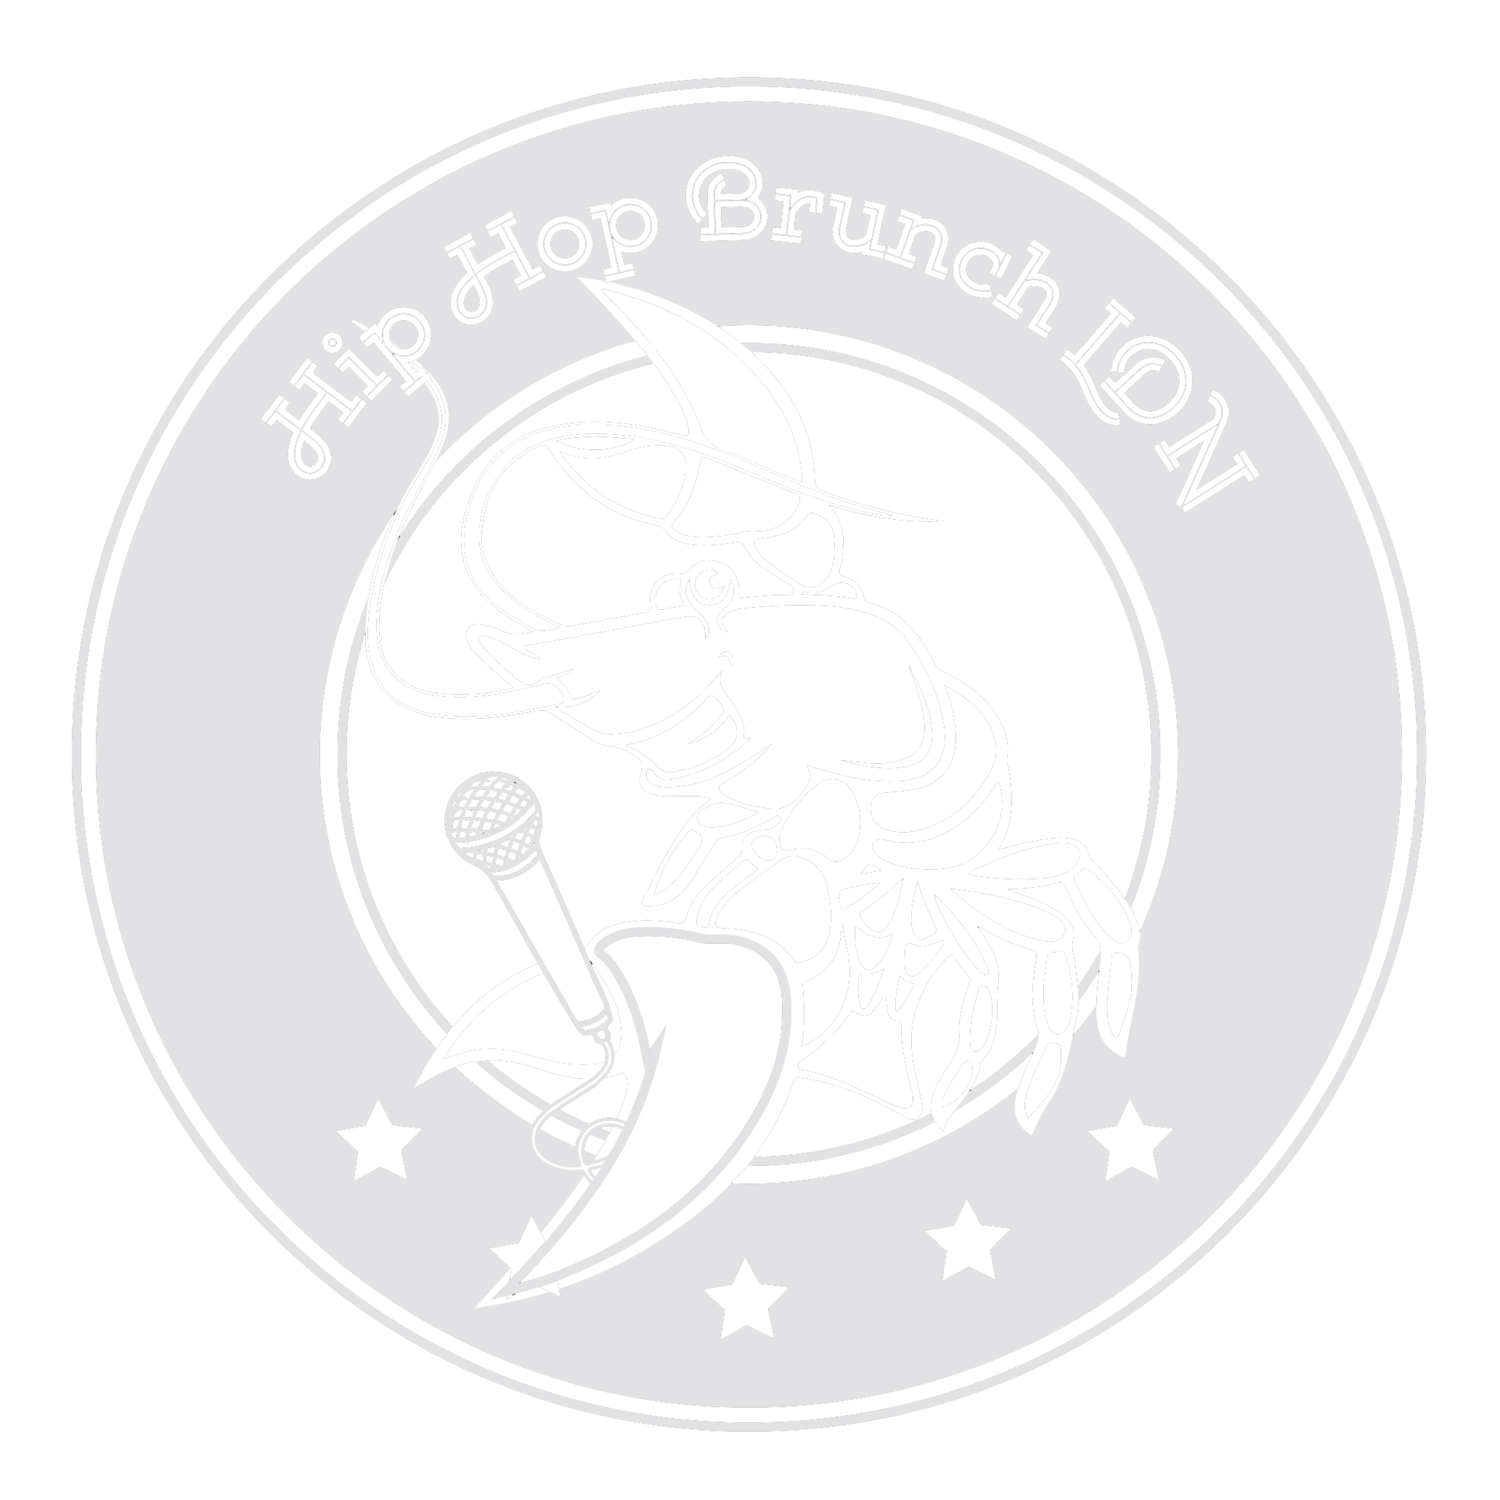 Hip Hop Brunch LDN